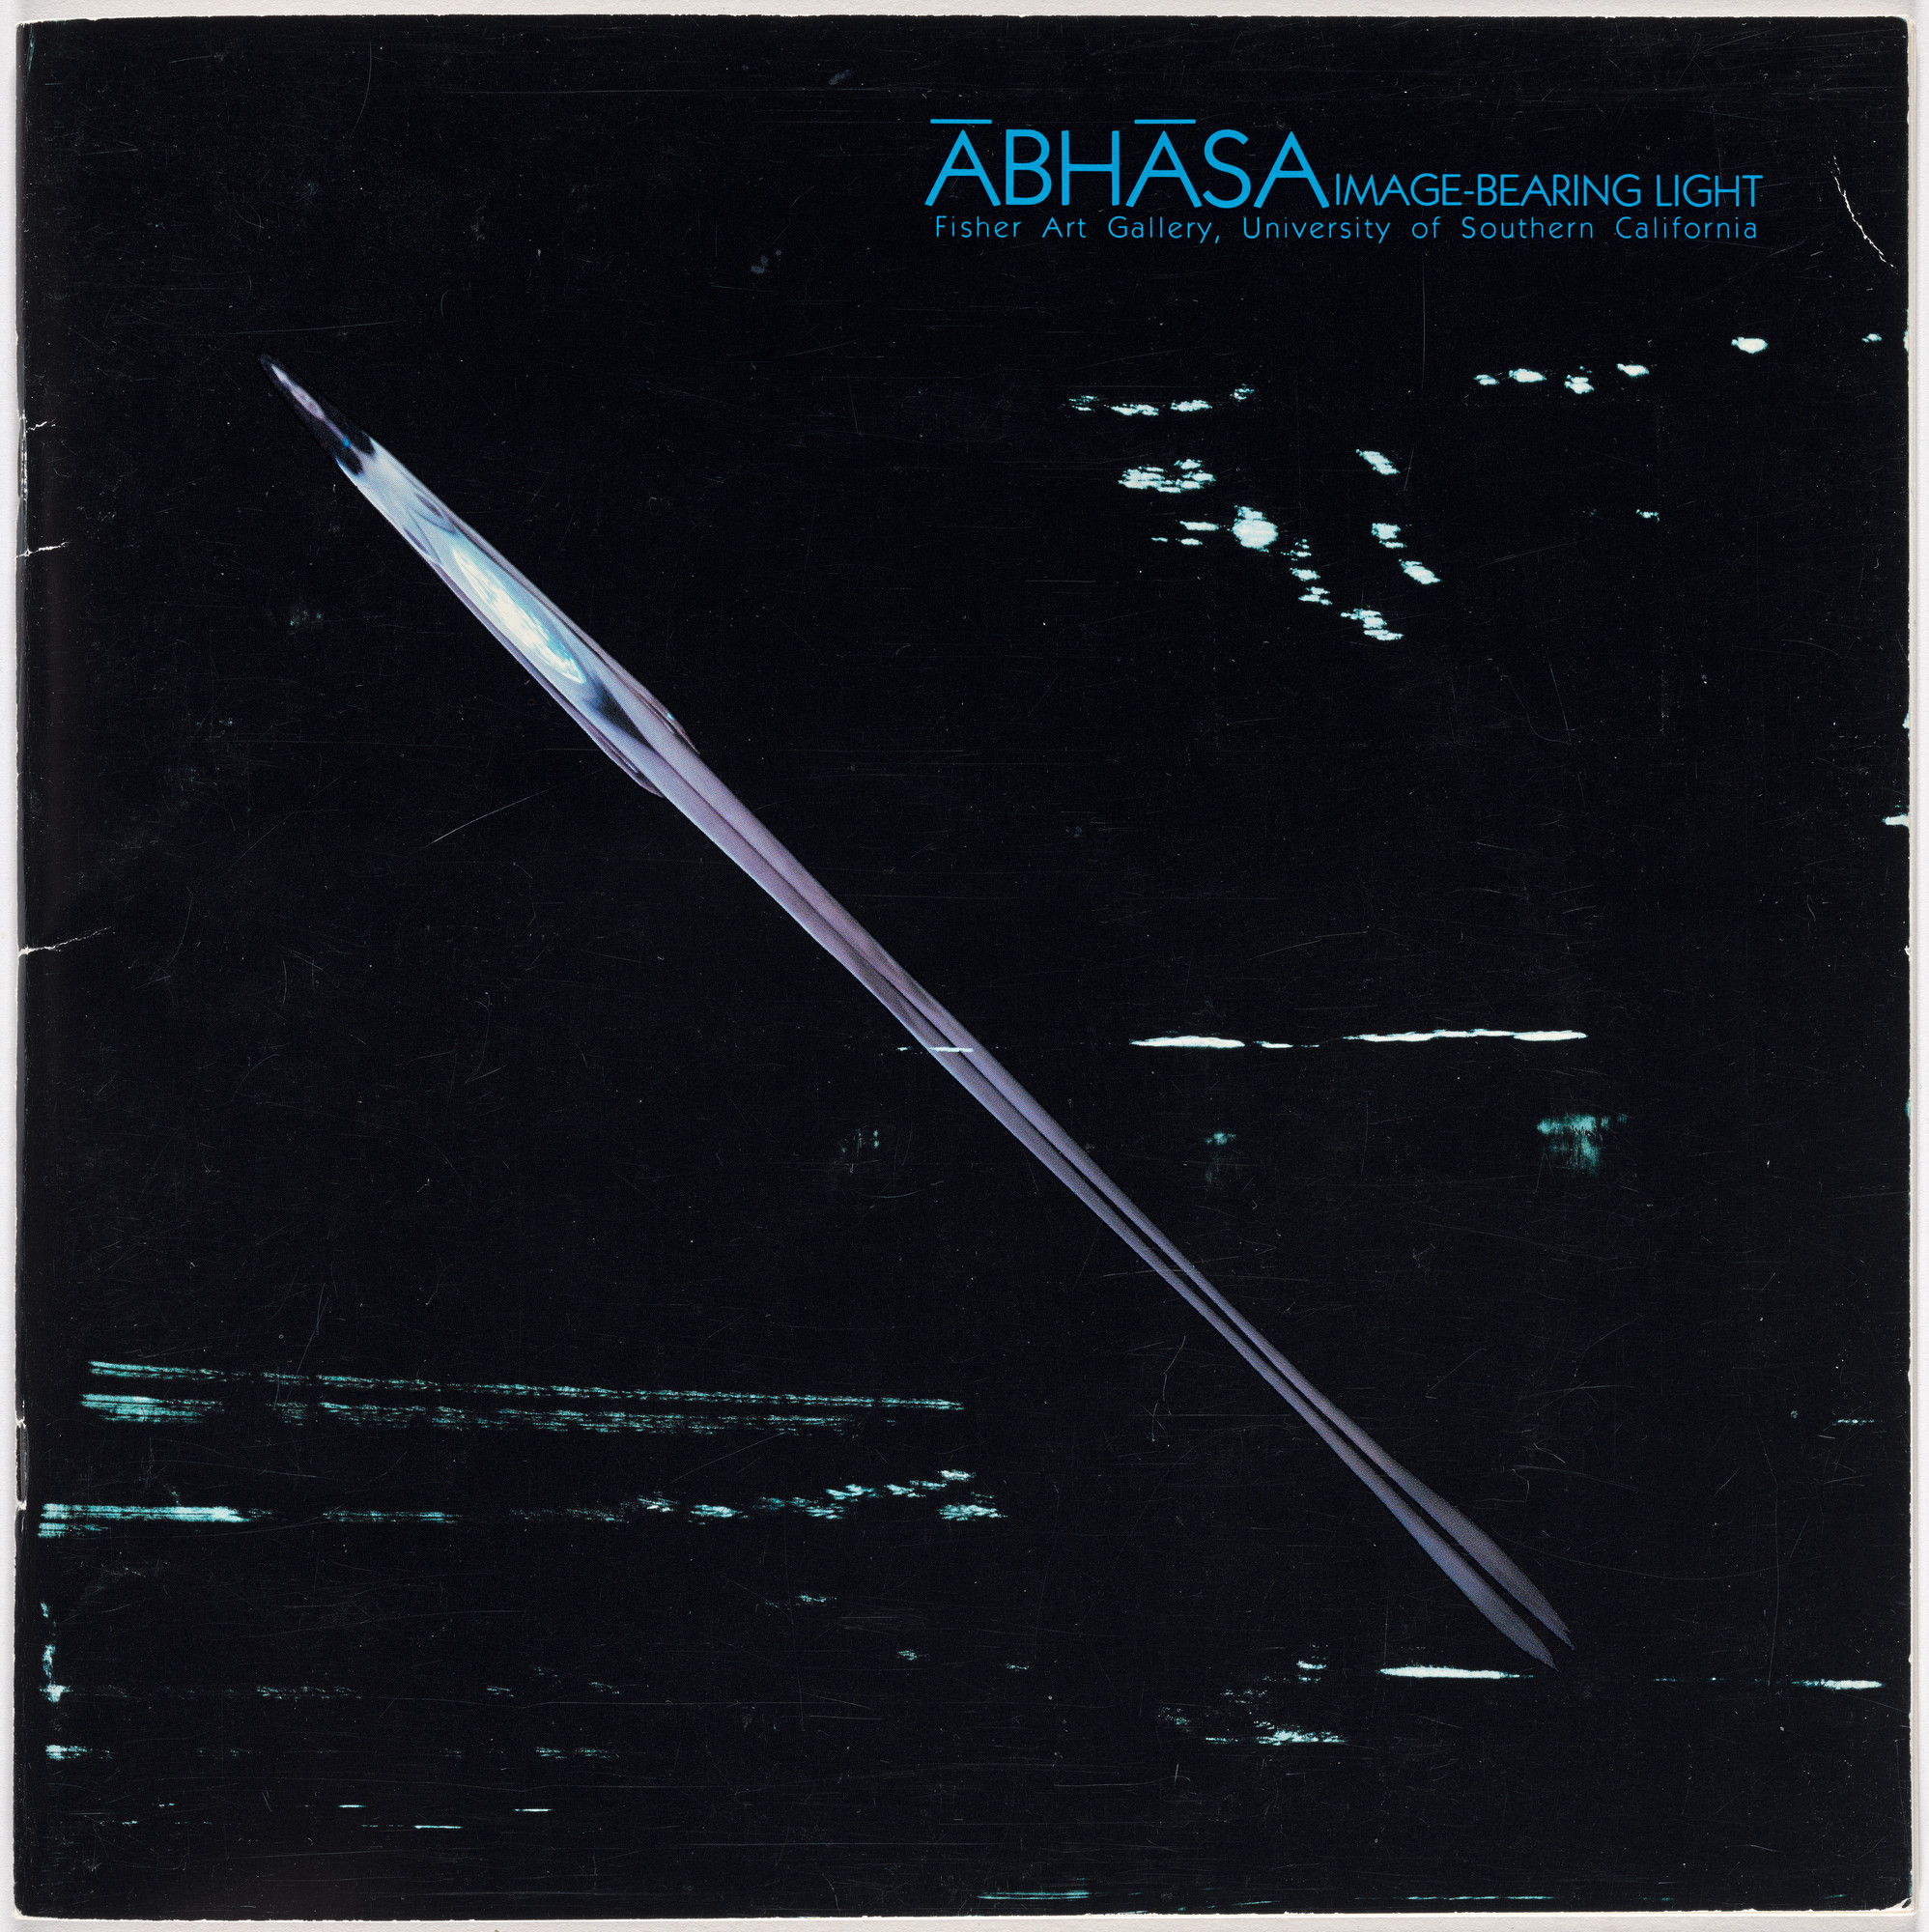 Various Artists, Lita Albuquerque, Robert Kramer, Harold Budd. Music from Abhasa, image-bearing light. 1983